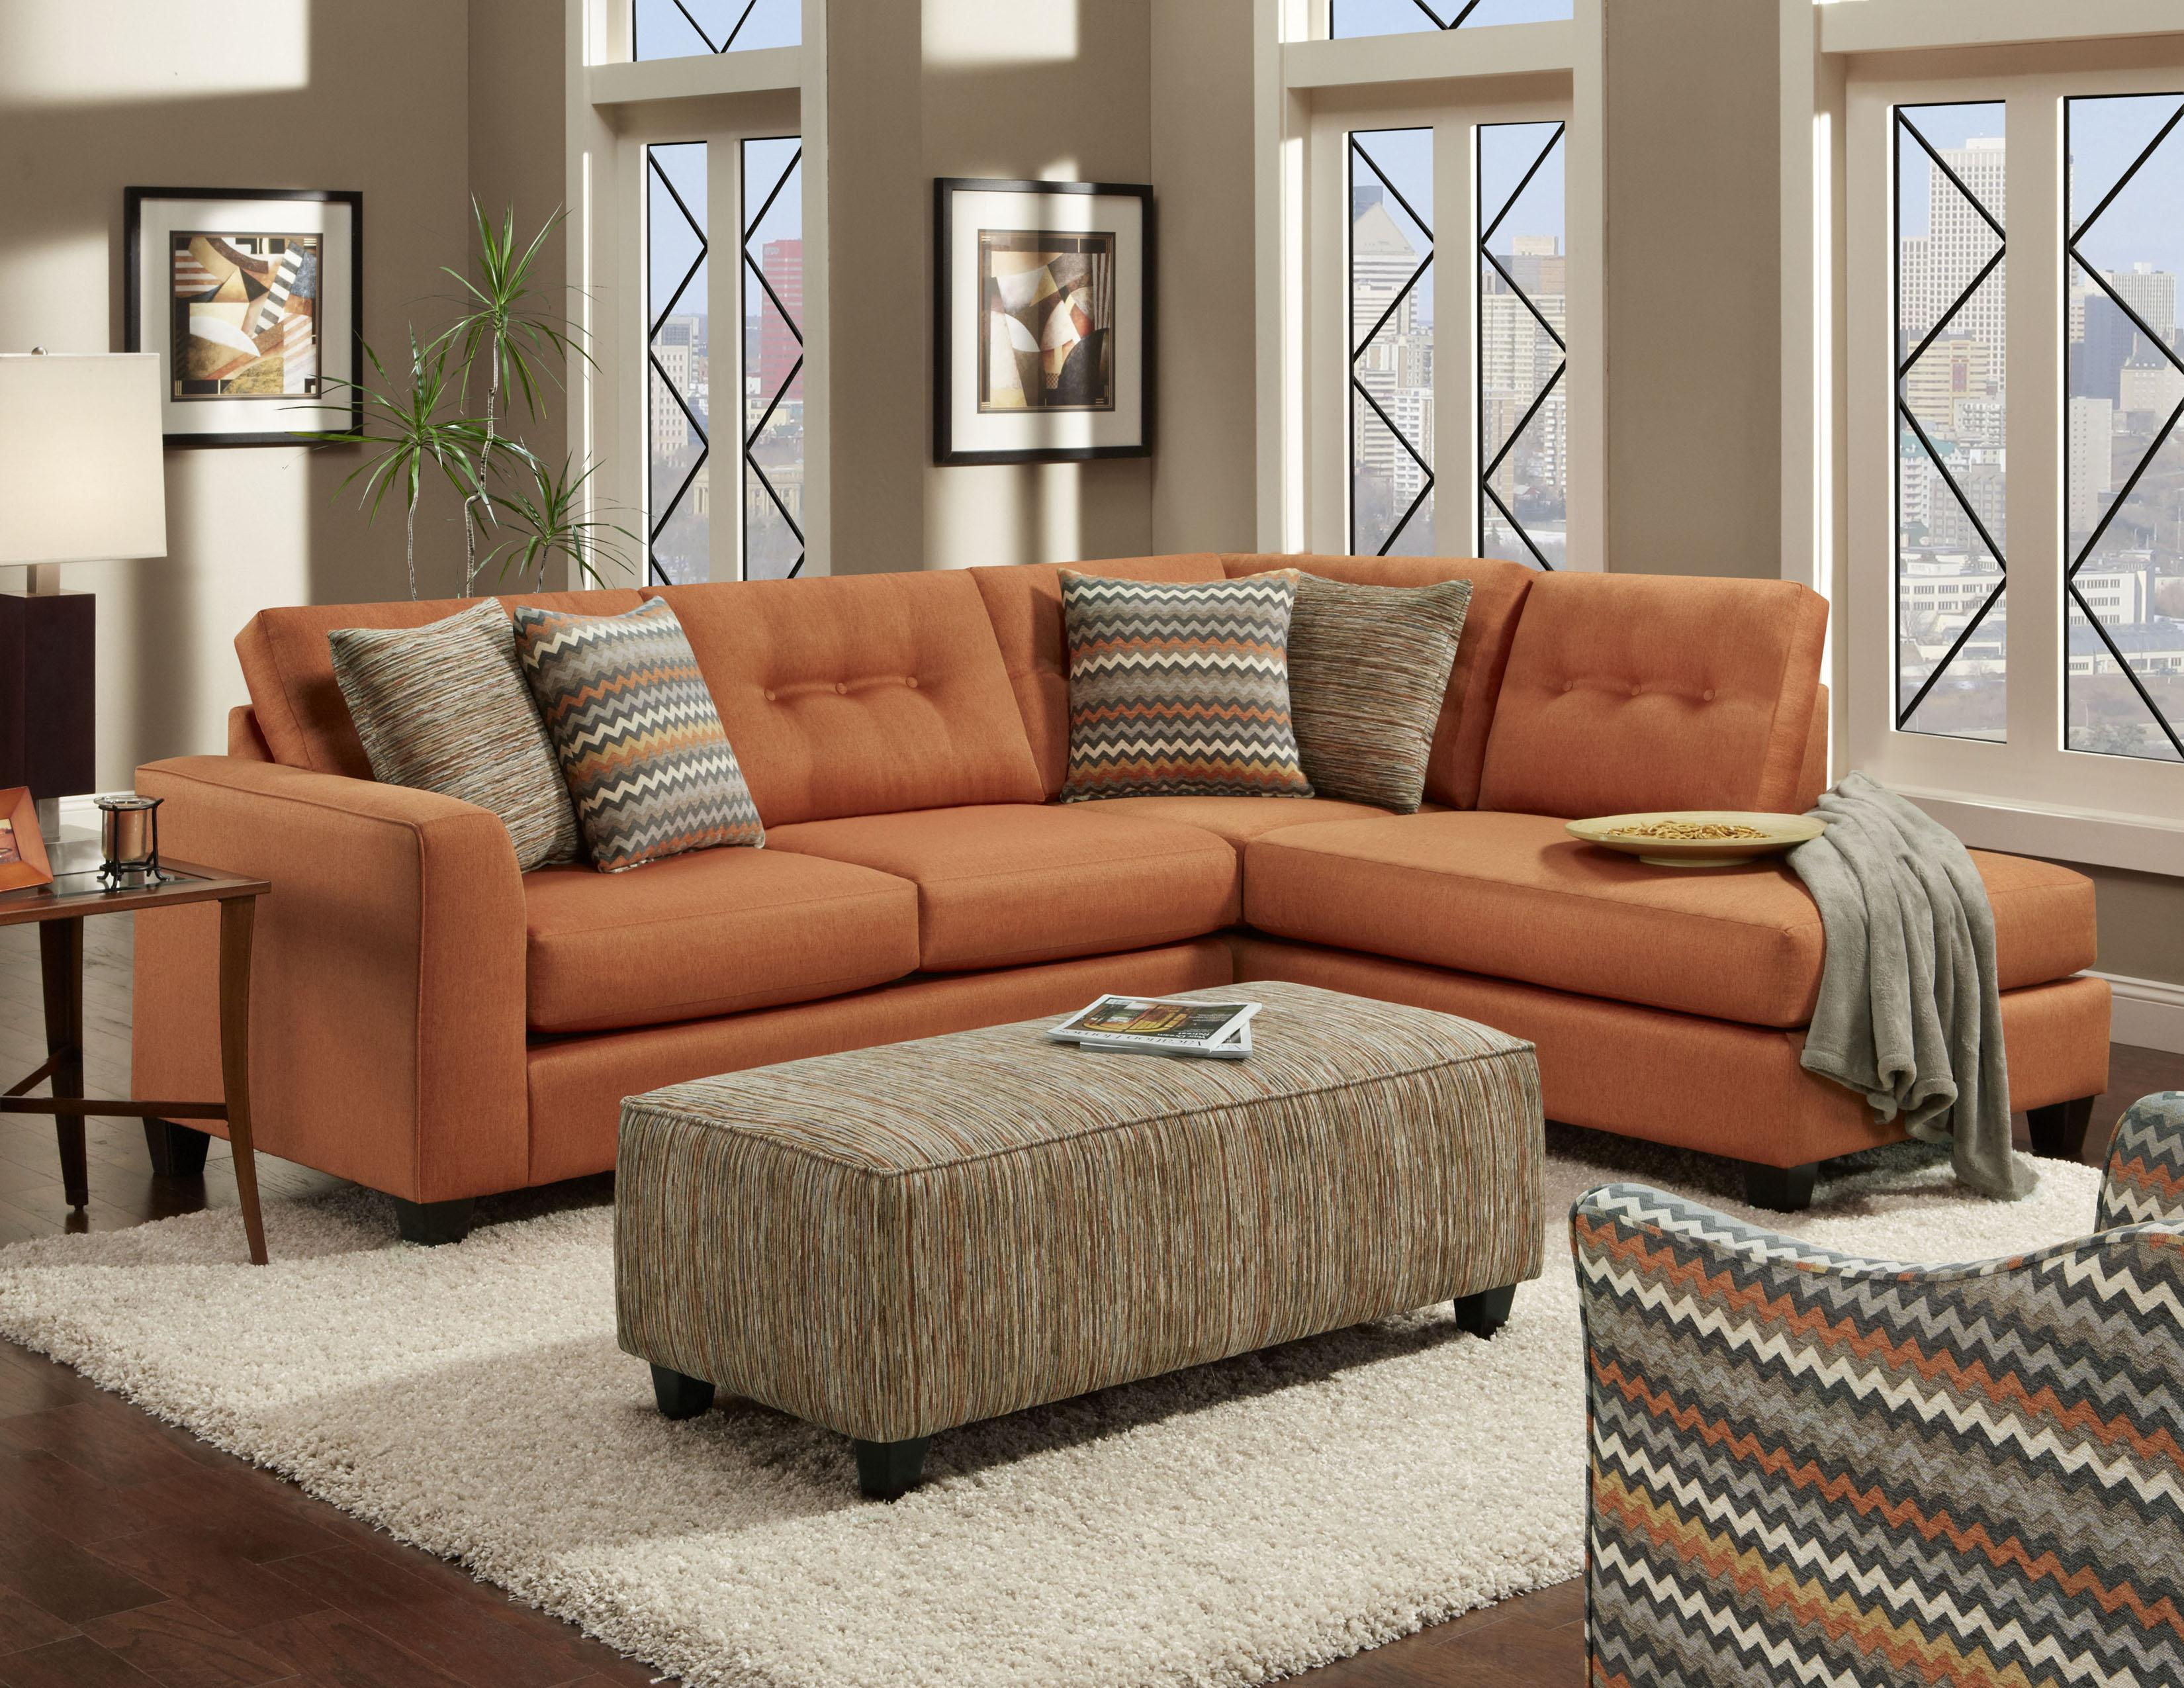 sofa curved small brick room with interior living red regard to sectional orange leather